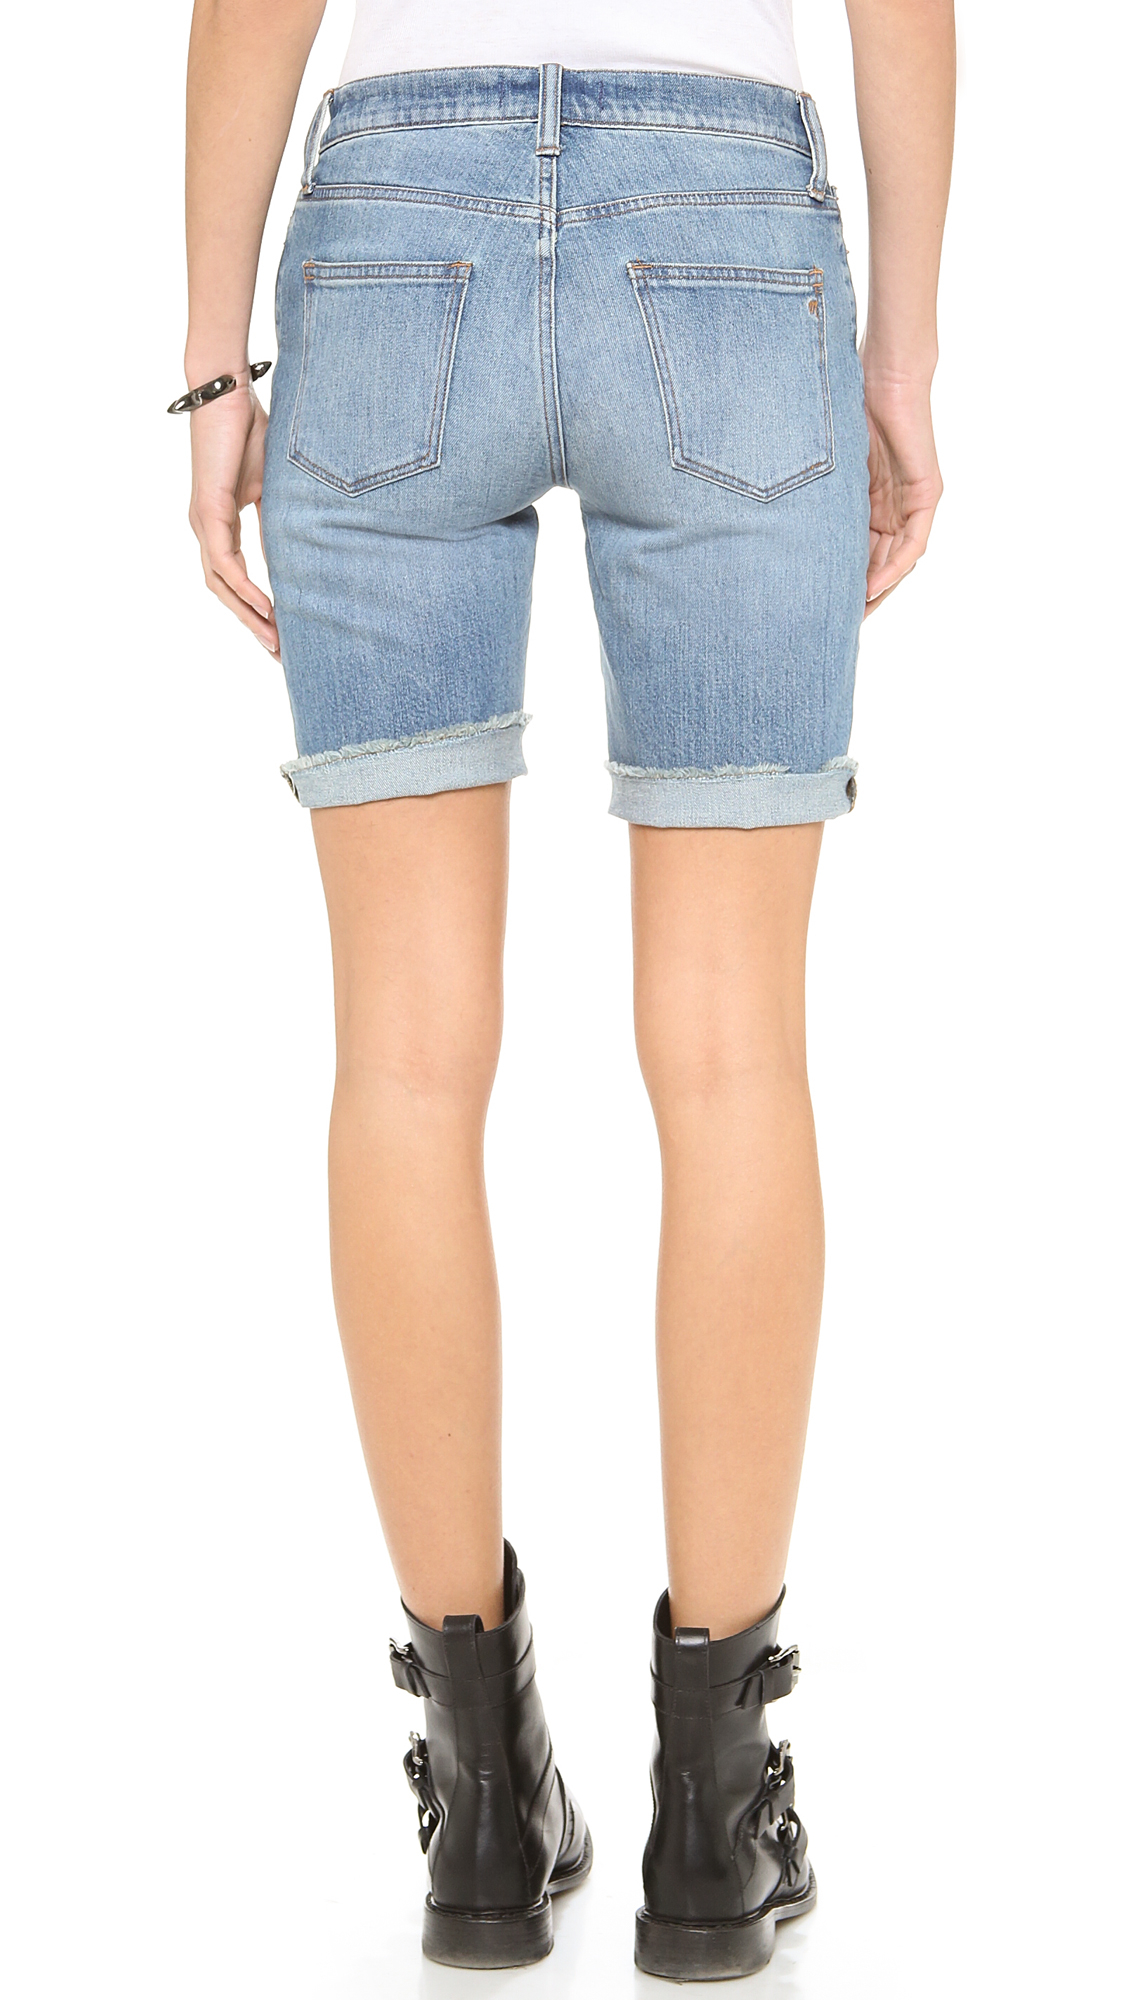 Madewell High Waisted Bermuda Shorts in Blue | Lyst